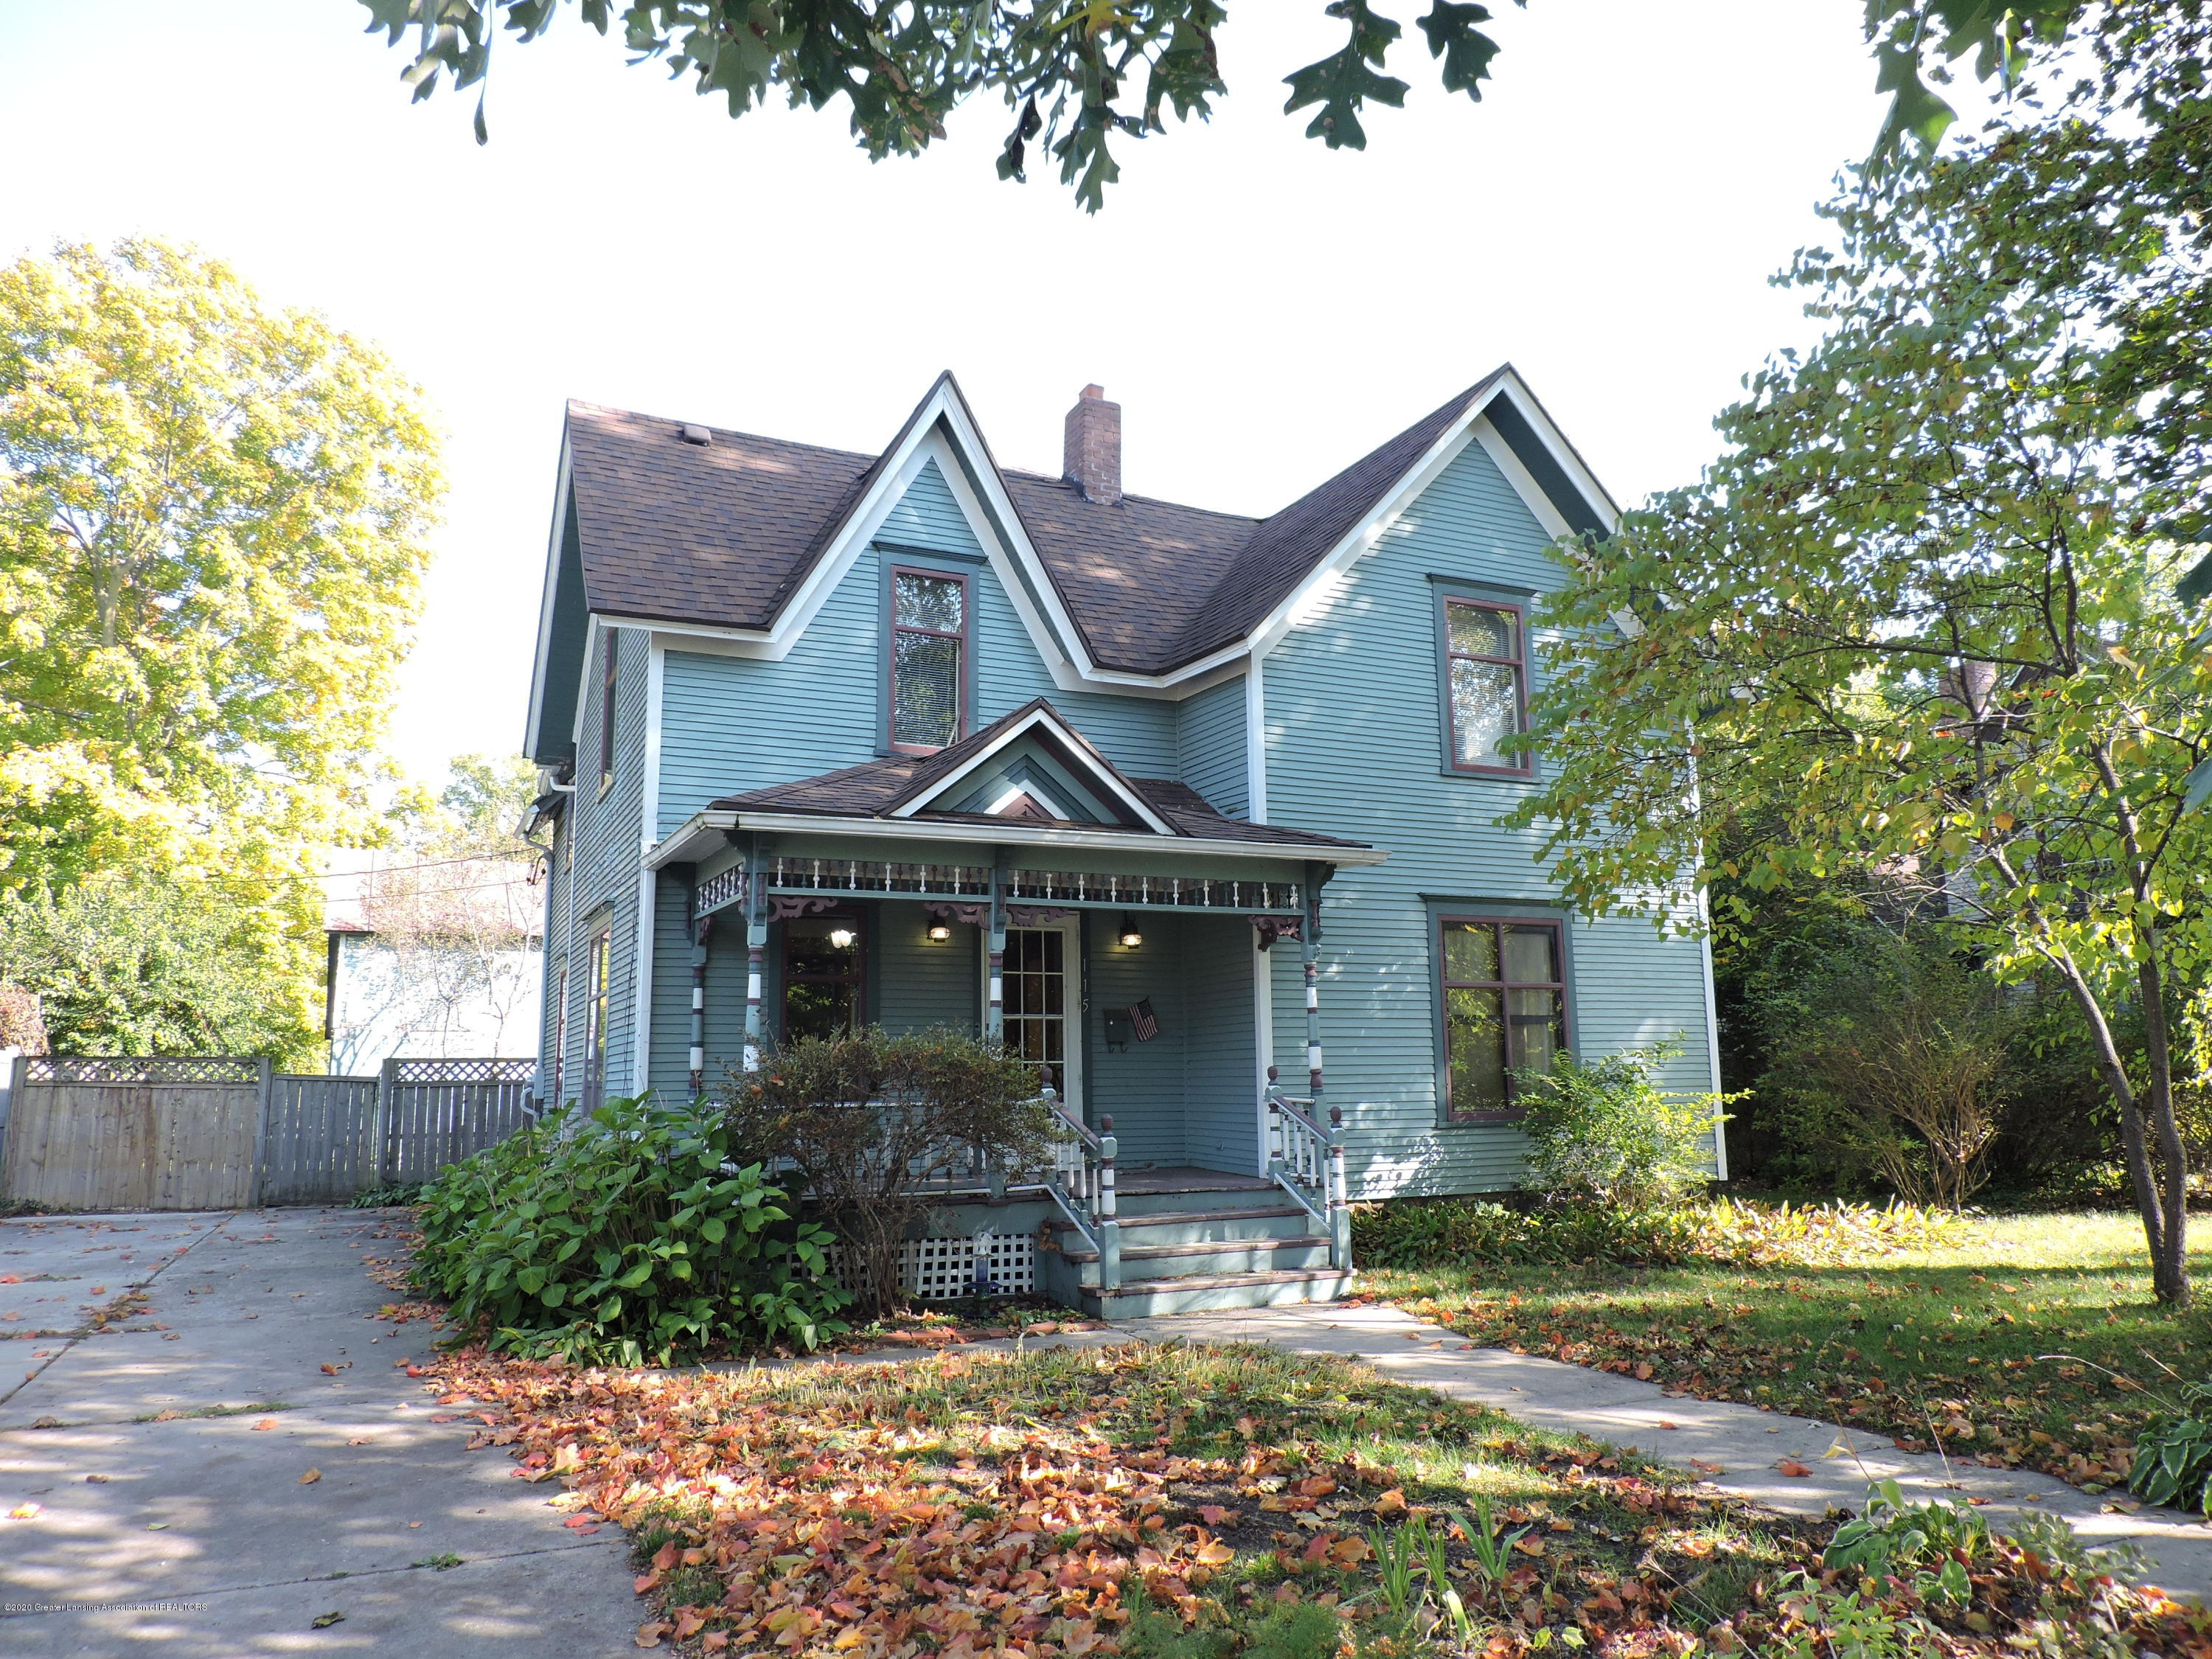 115 S River St - Front - 1